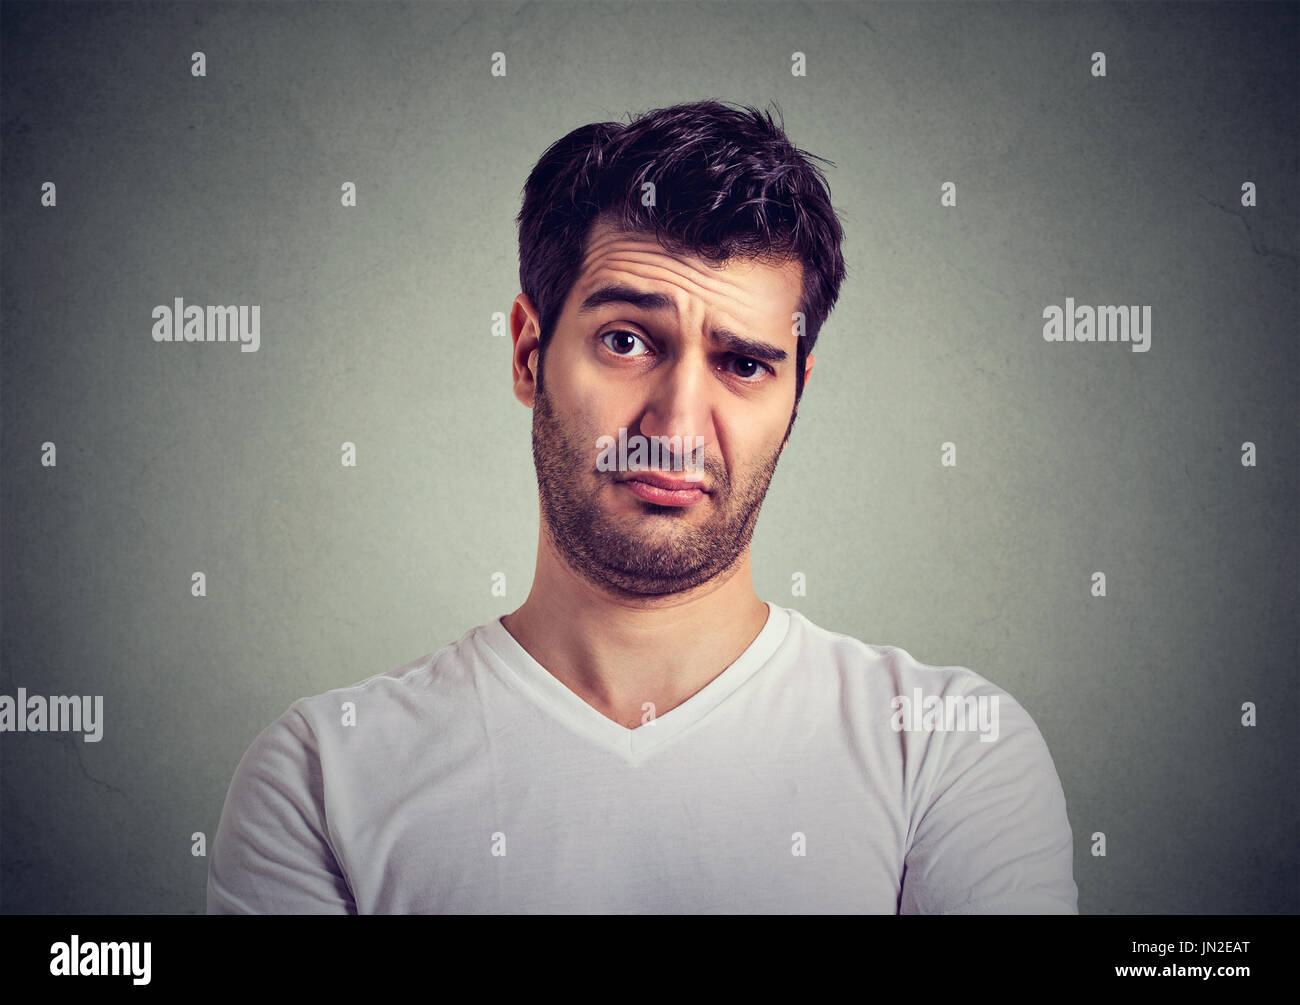 frowning man thinking expressing doubts and concerns - Stock Image